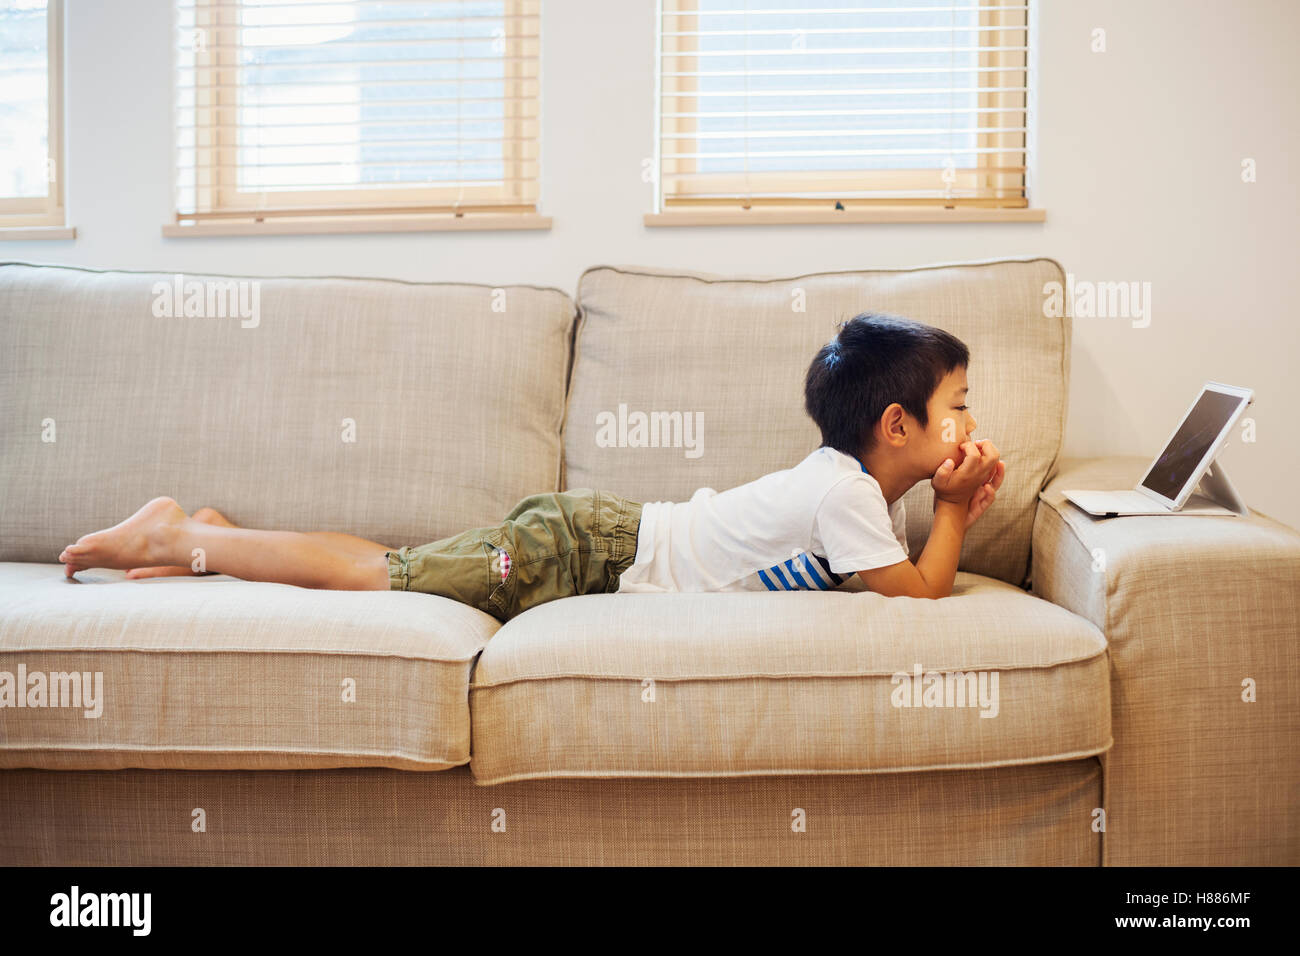 Watching immagini watching fotos stock alamy - Divano del sesso ...